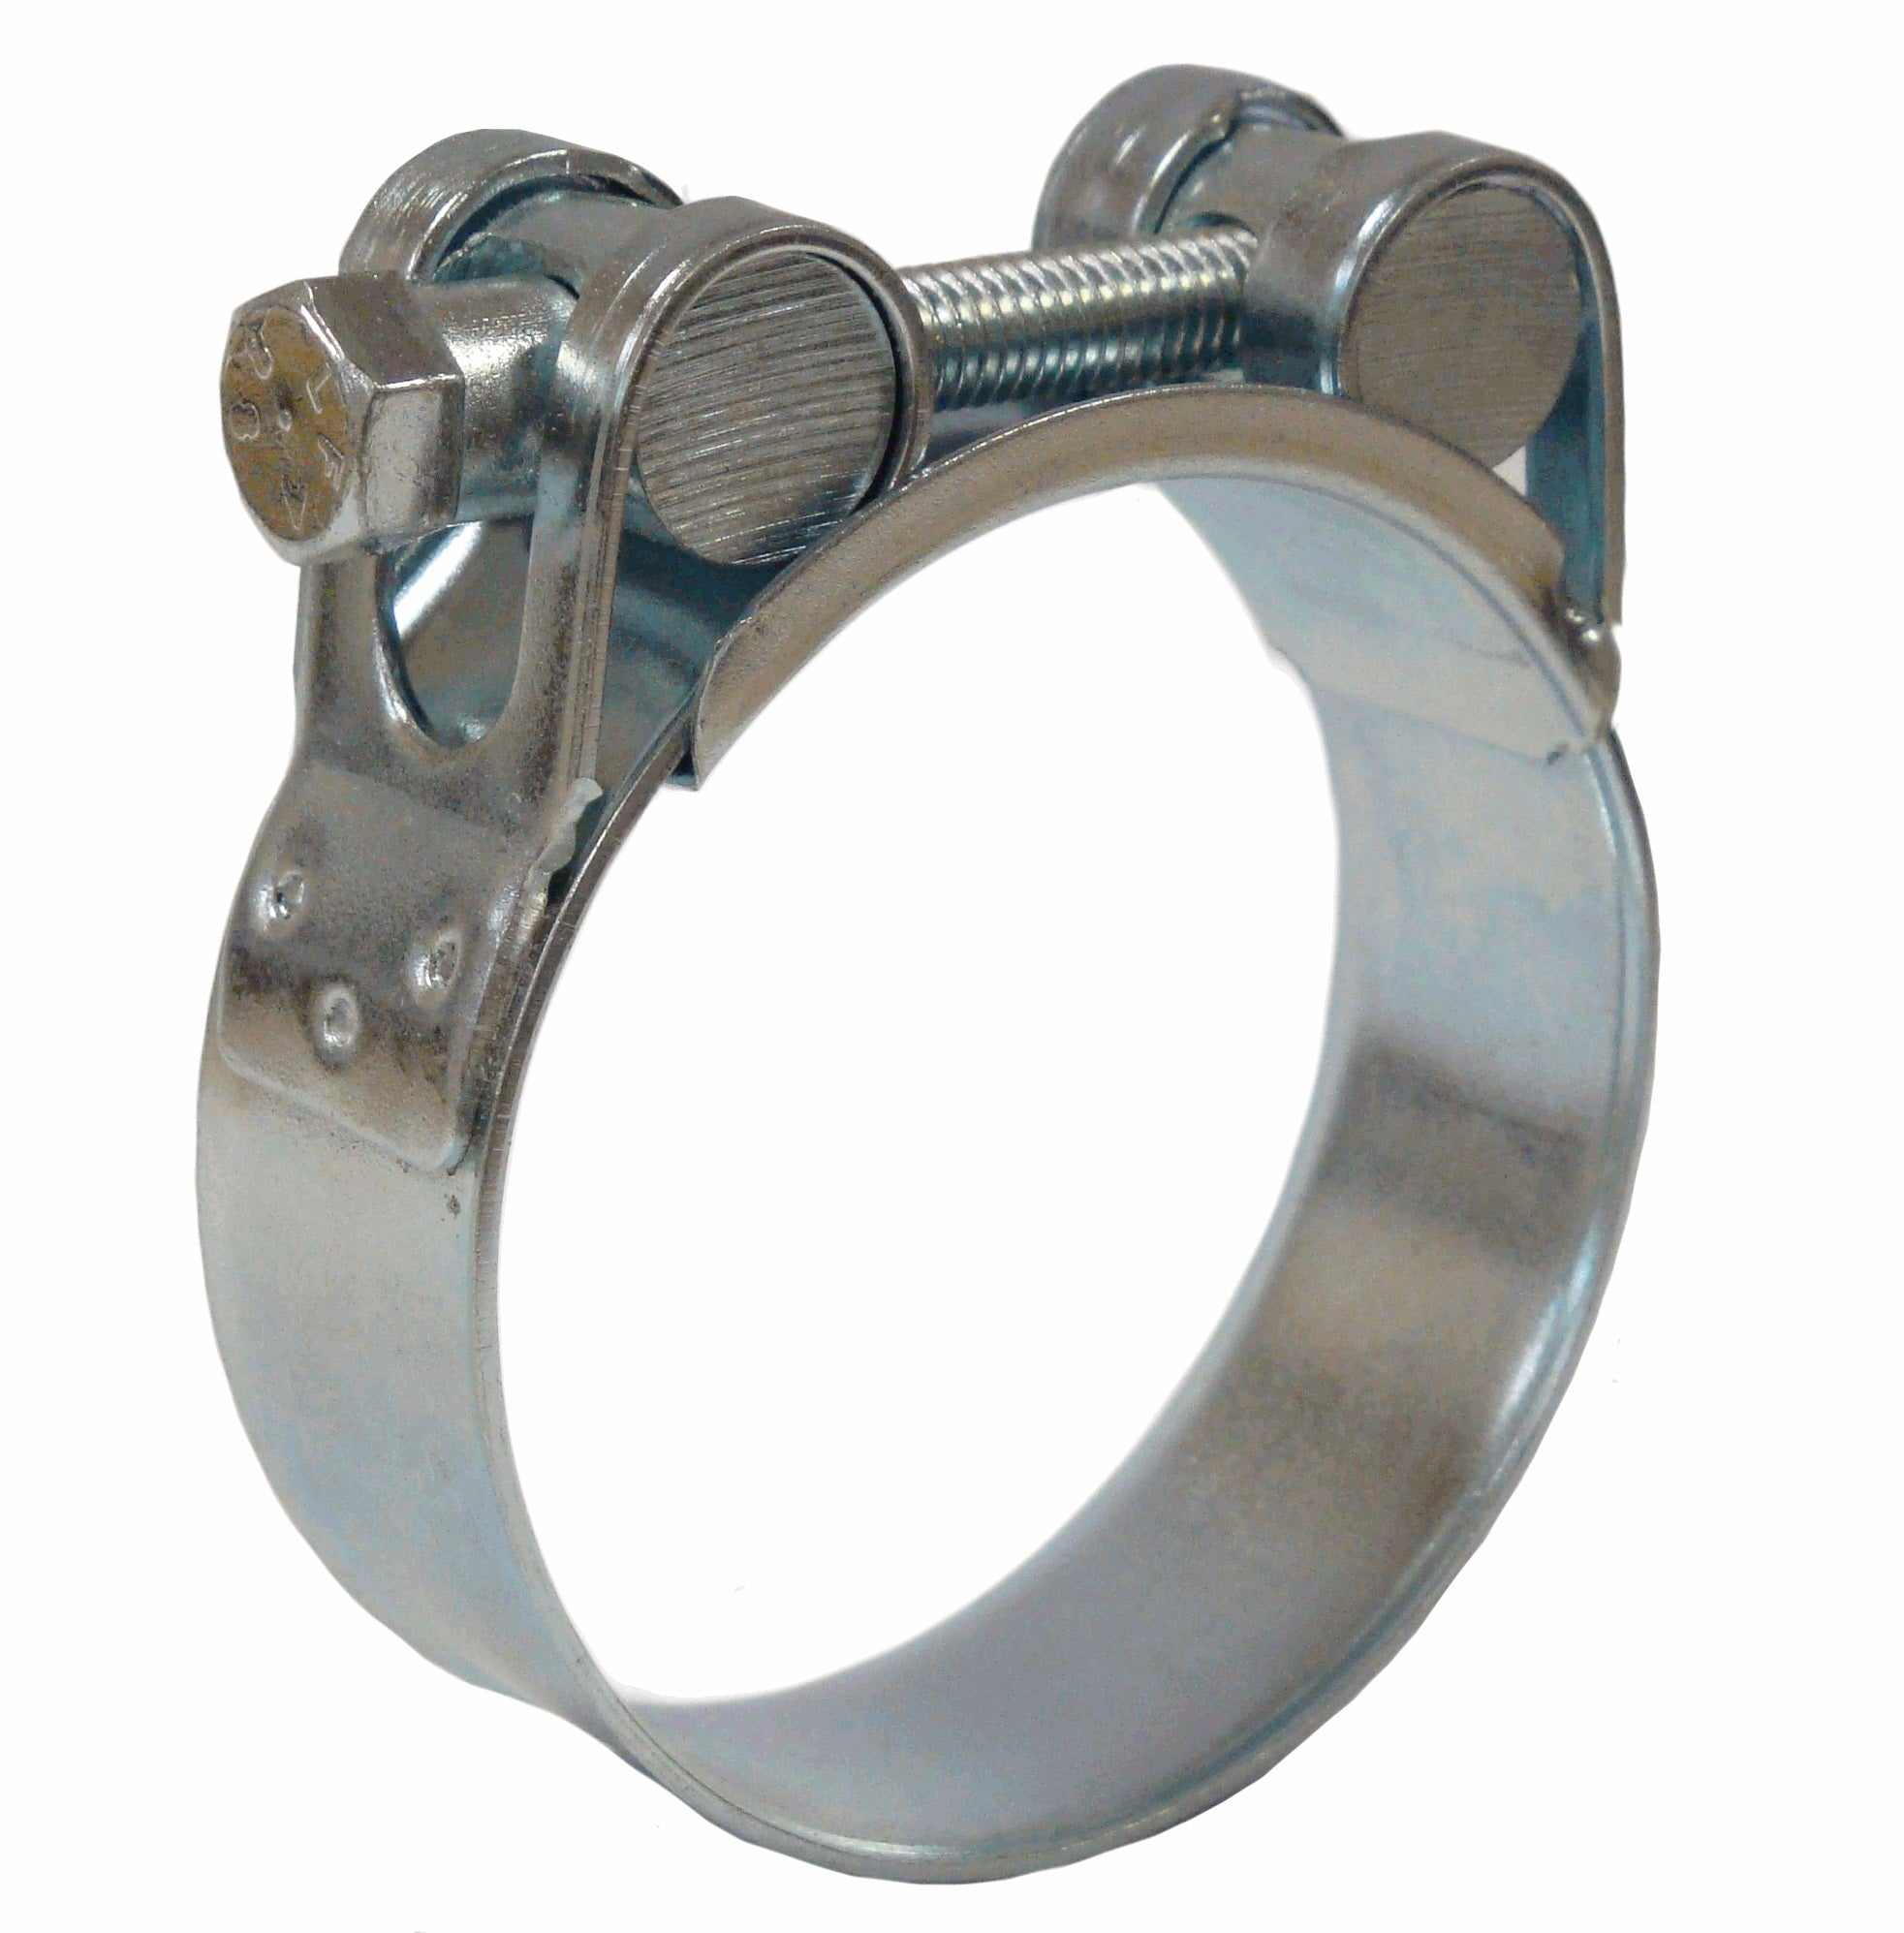 Jubilee® Superclamp 29-31mm 316 Stainless Steel